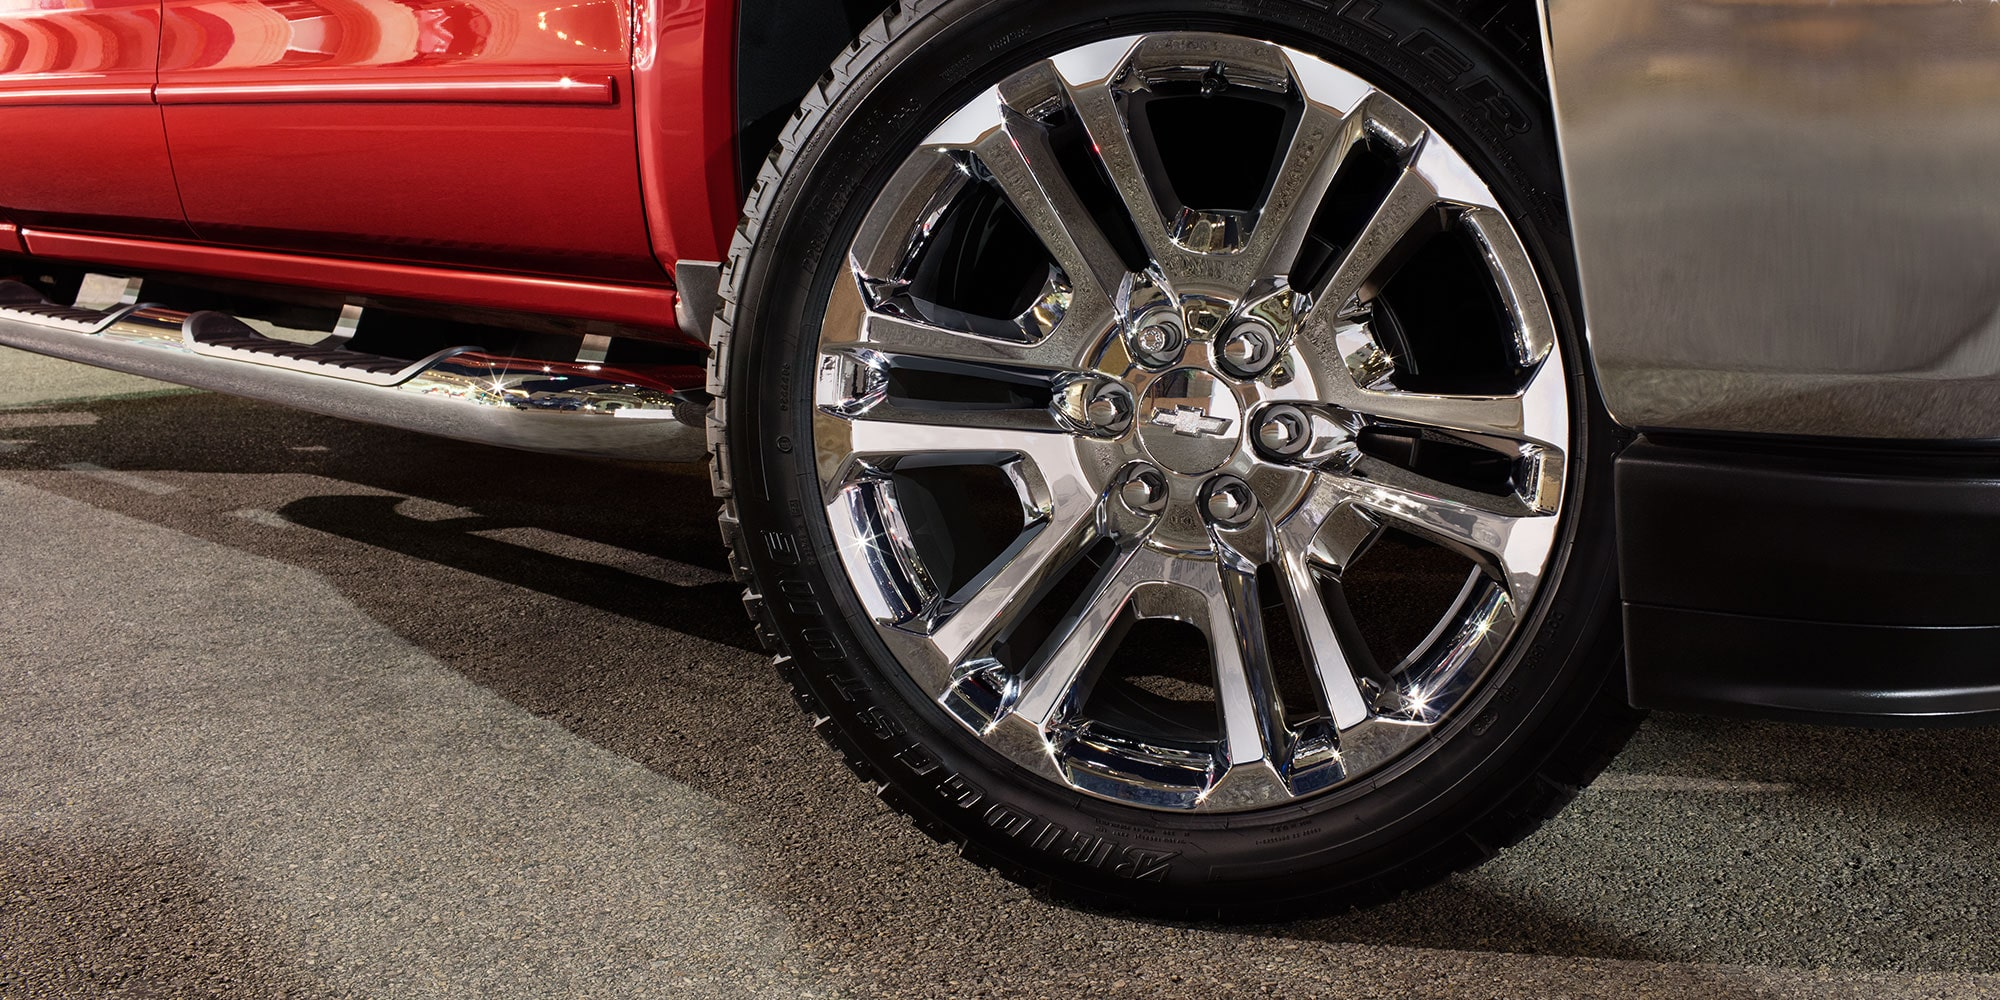 Chevrolt Silverado 1500 Wheels